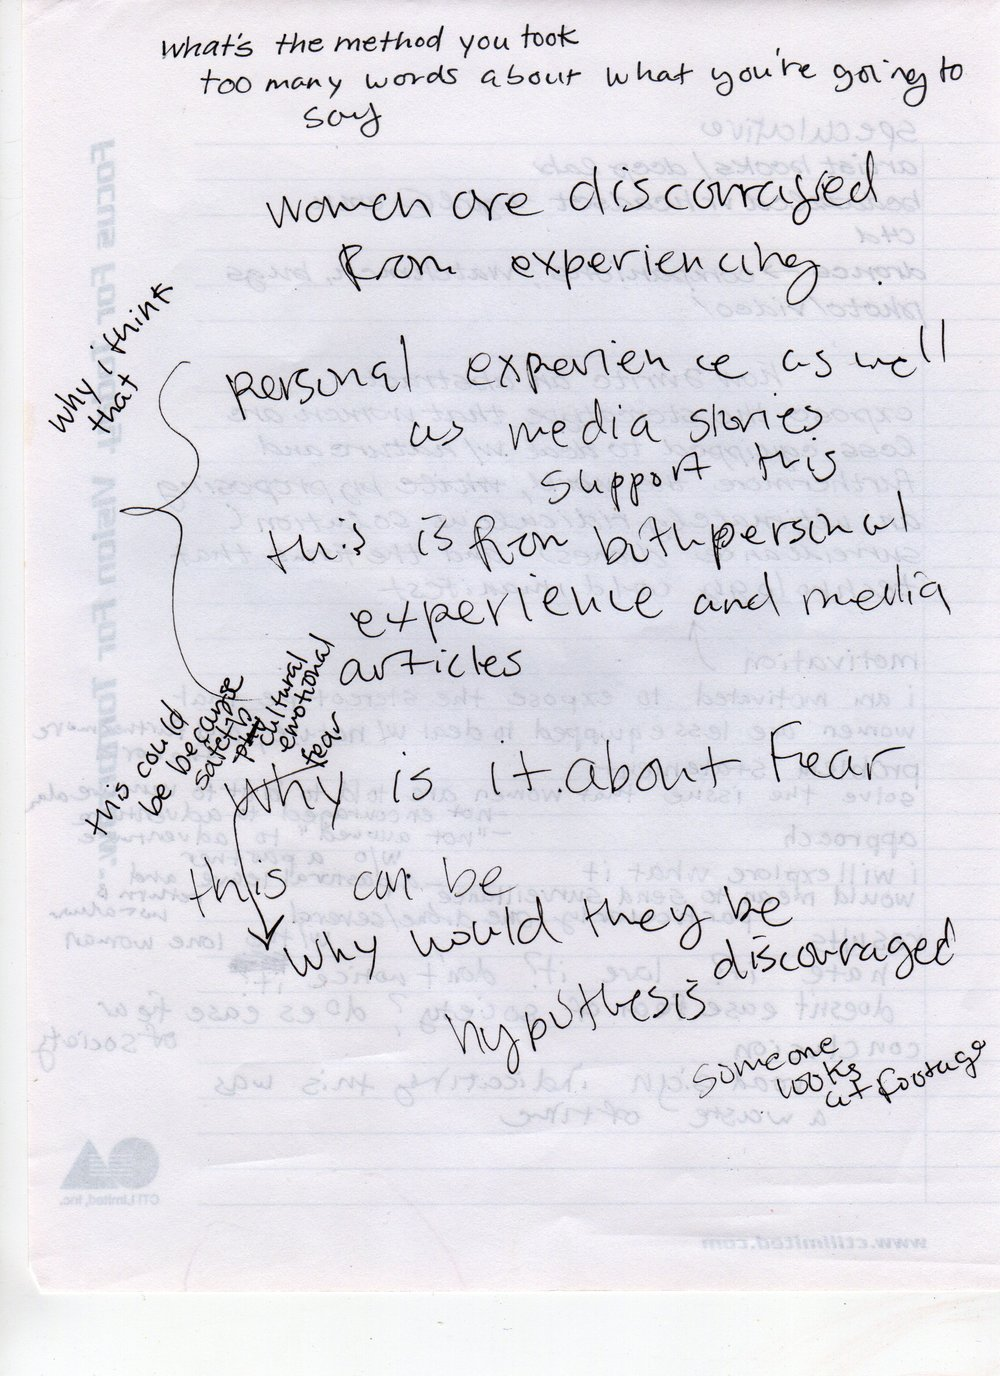 thesis_handwritten_notes020.jpg